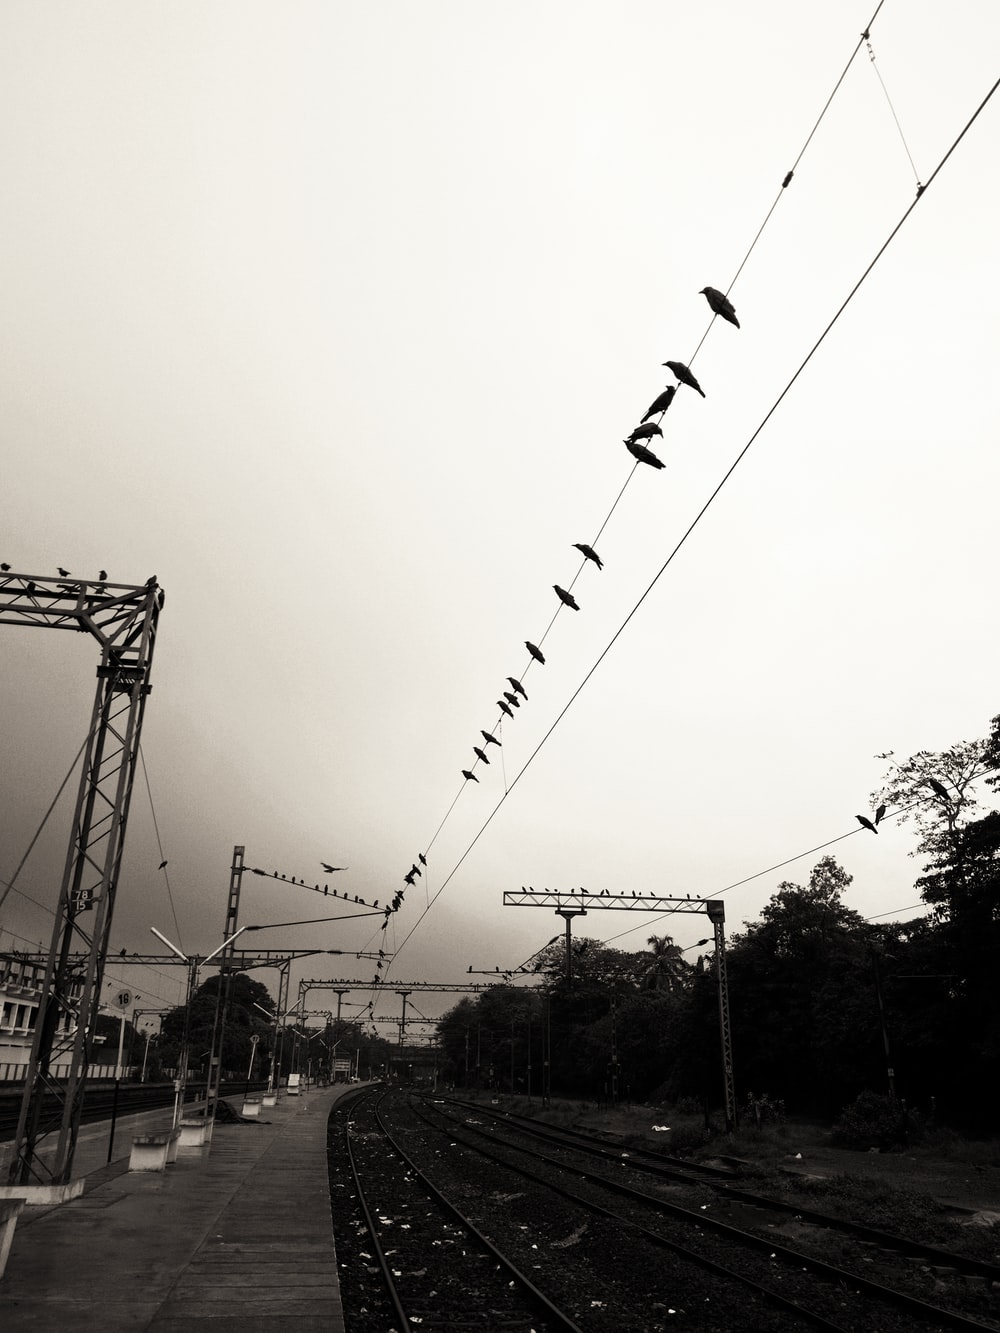 grayscale photography of train track